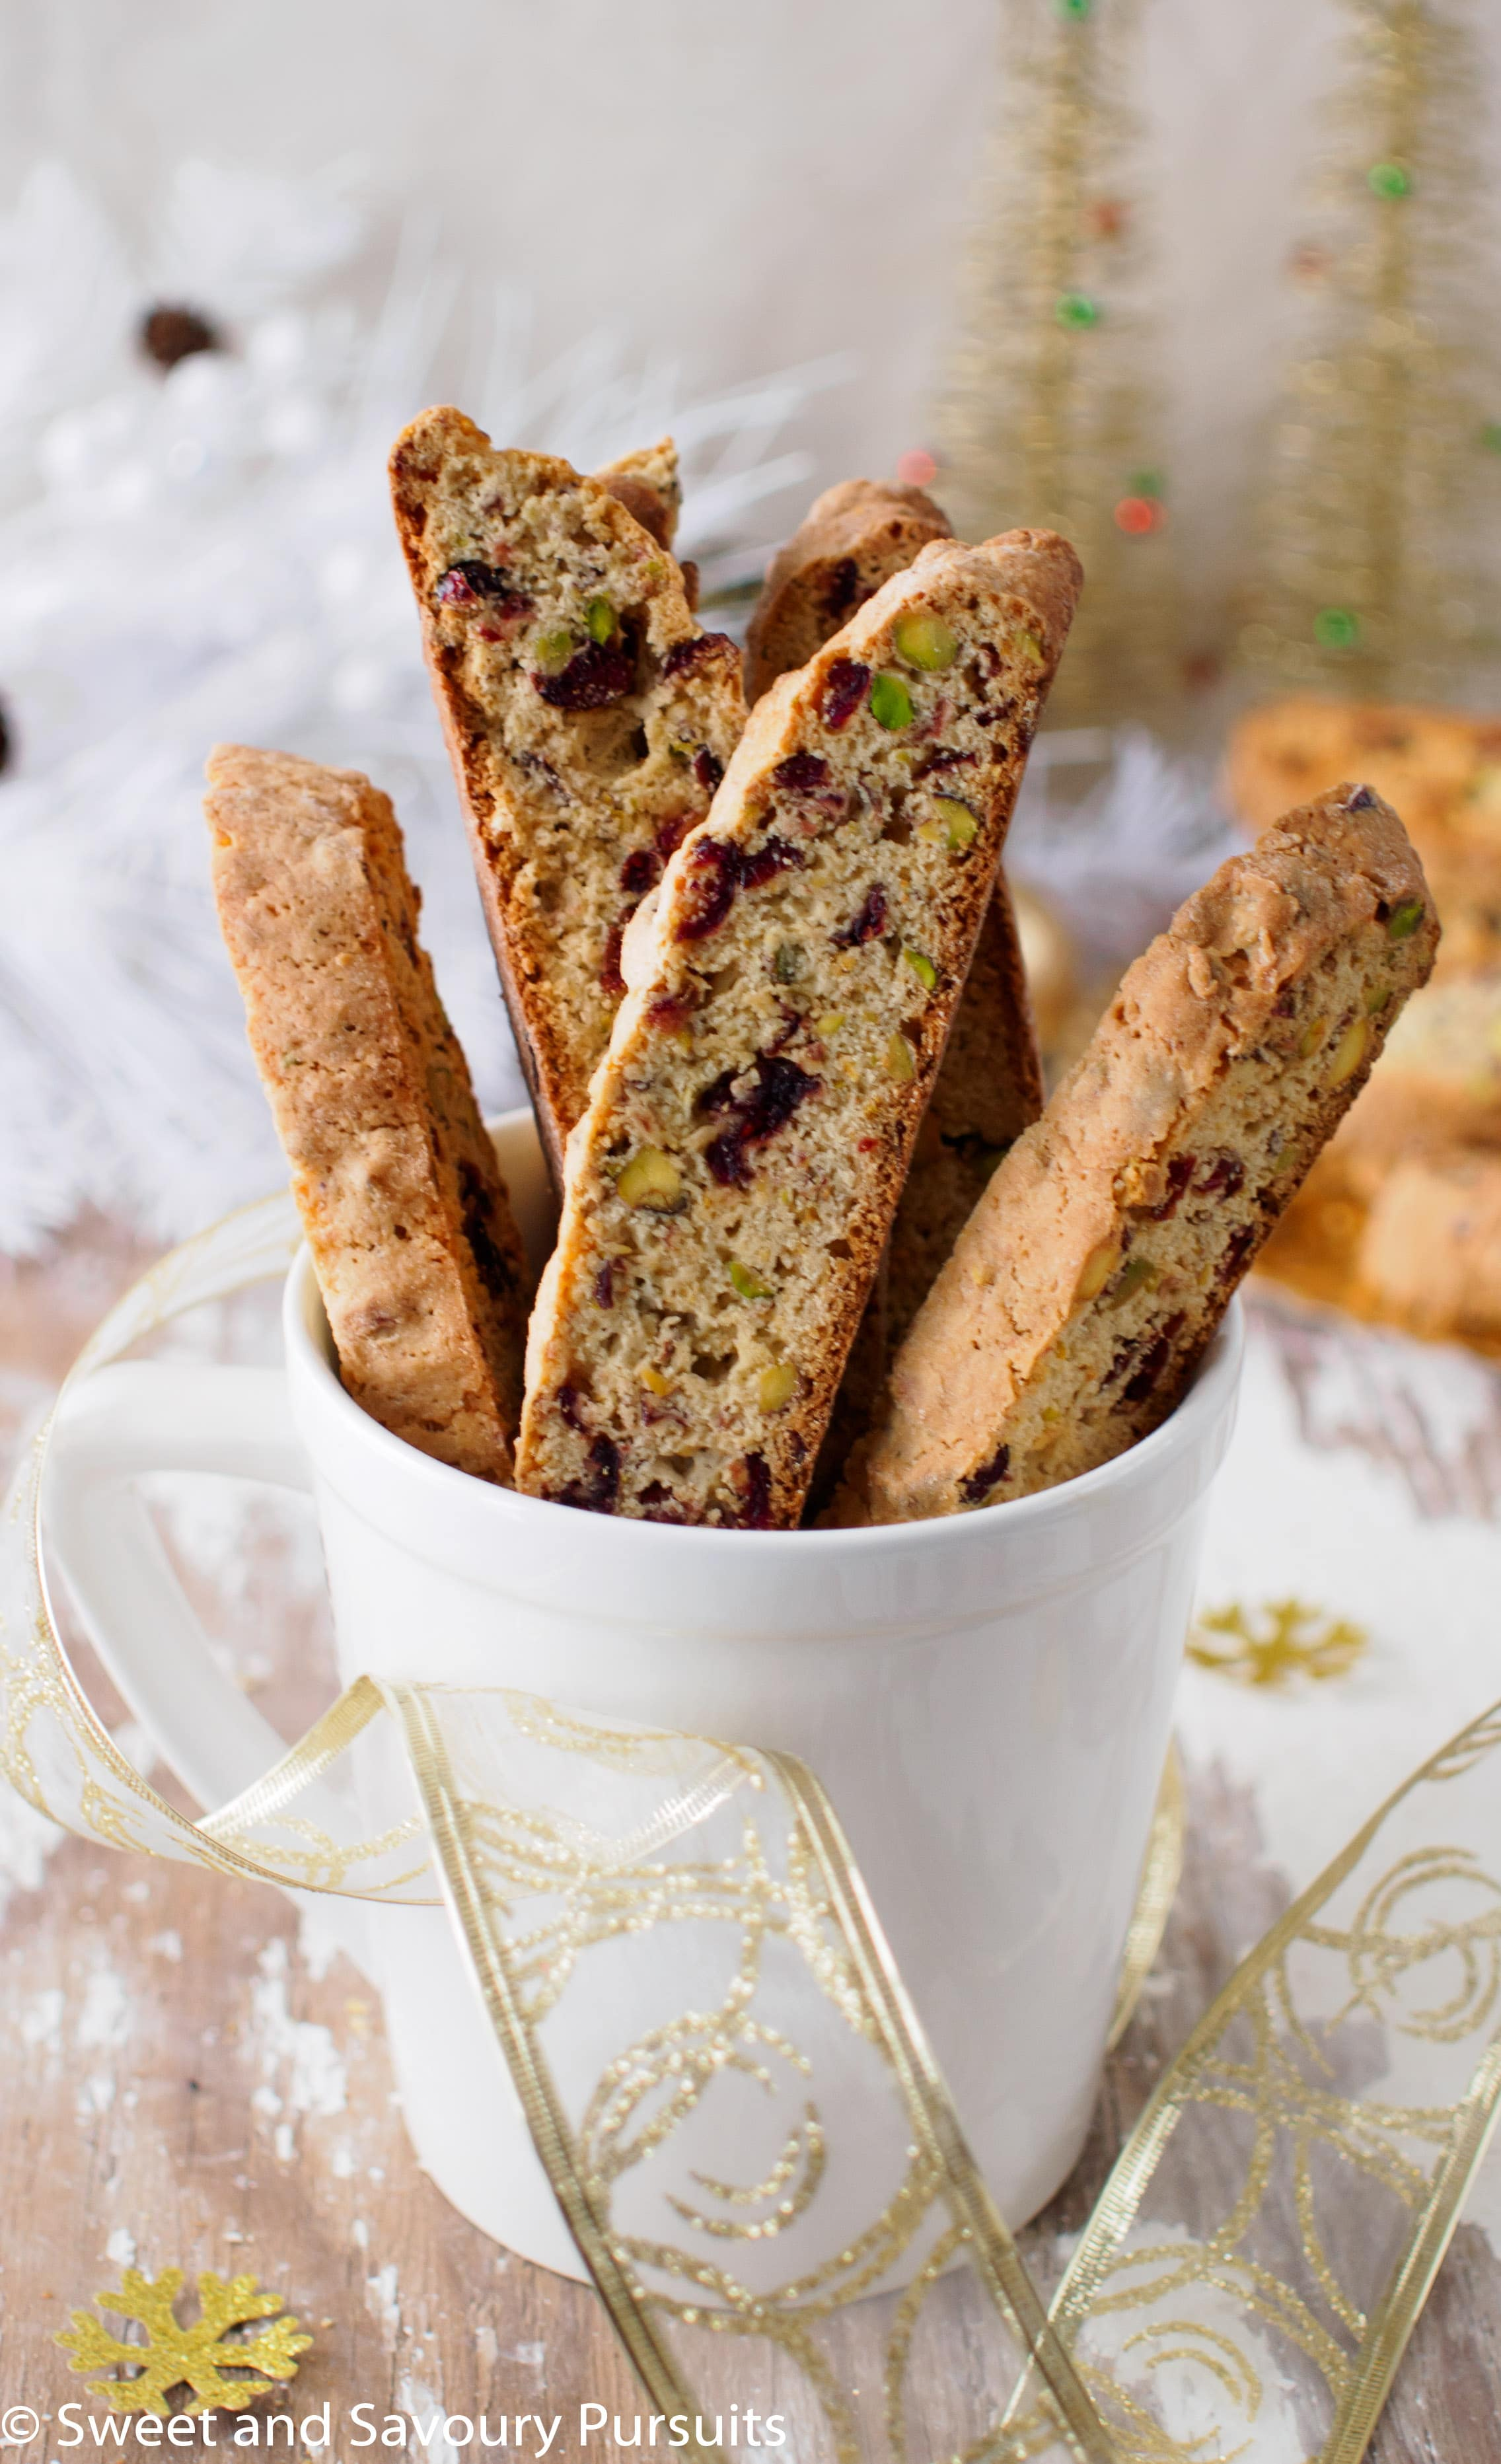 If you are going to make biscotti for the holiday season, then let this Pistachio and Cranberry Biscotti be the one! It's the perfect holiday biscotti!